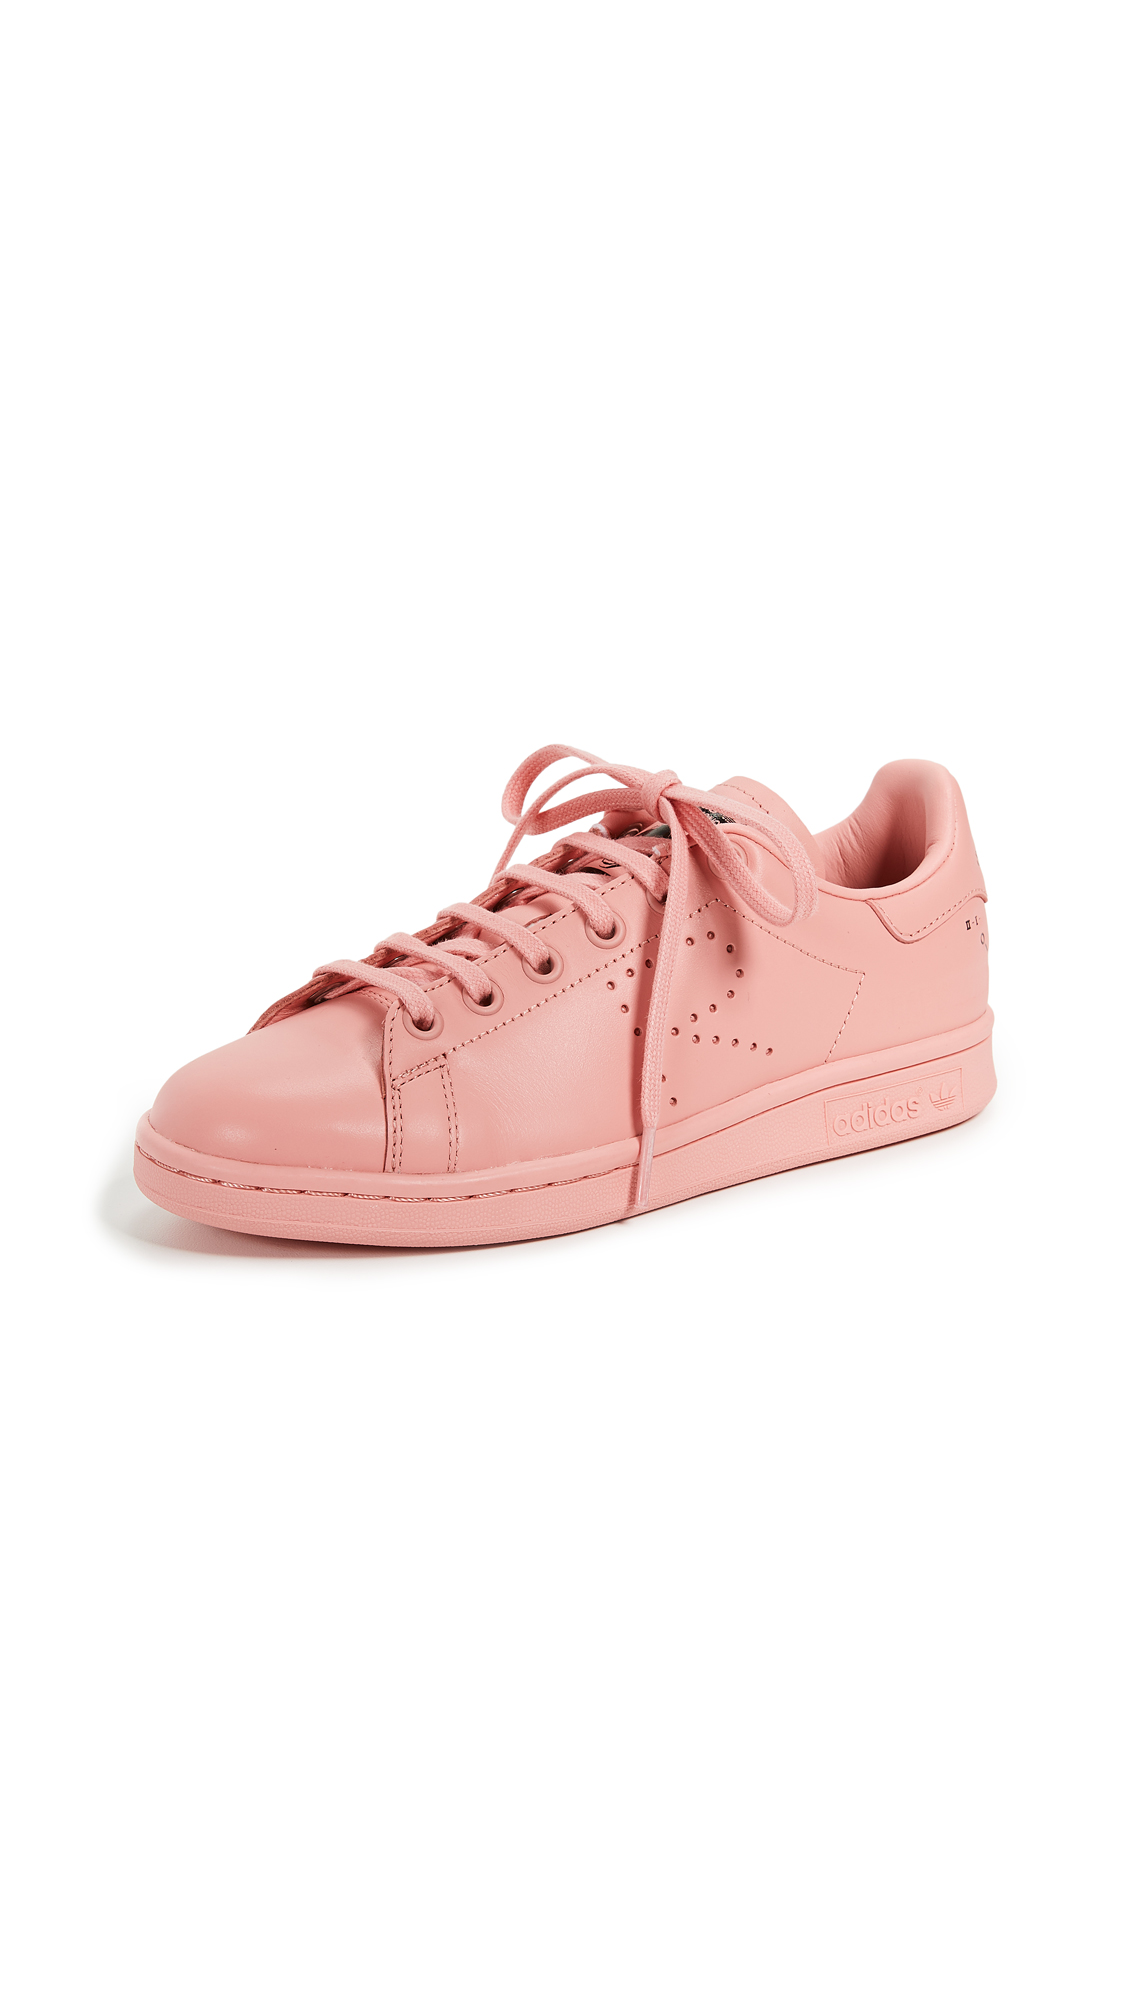 Adidas Raf Simons Stan Smith Sneakers - Tactile Rose/Bliss Pink/White